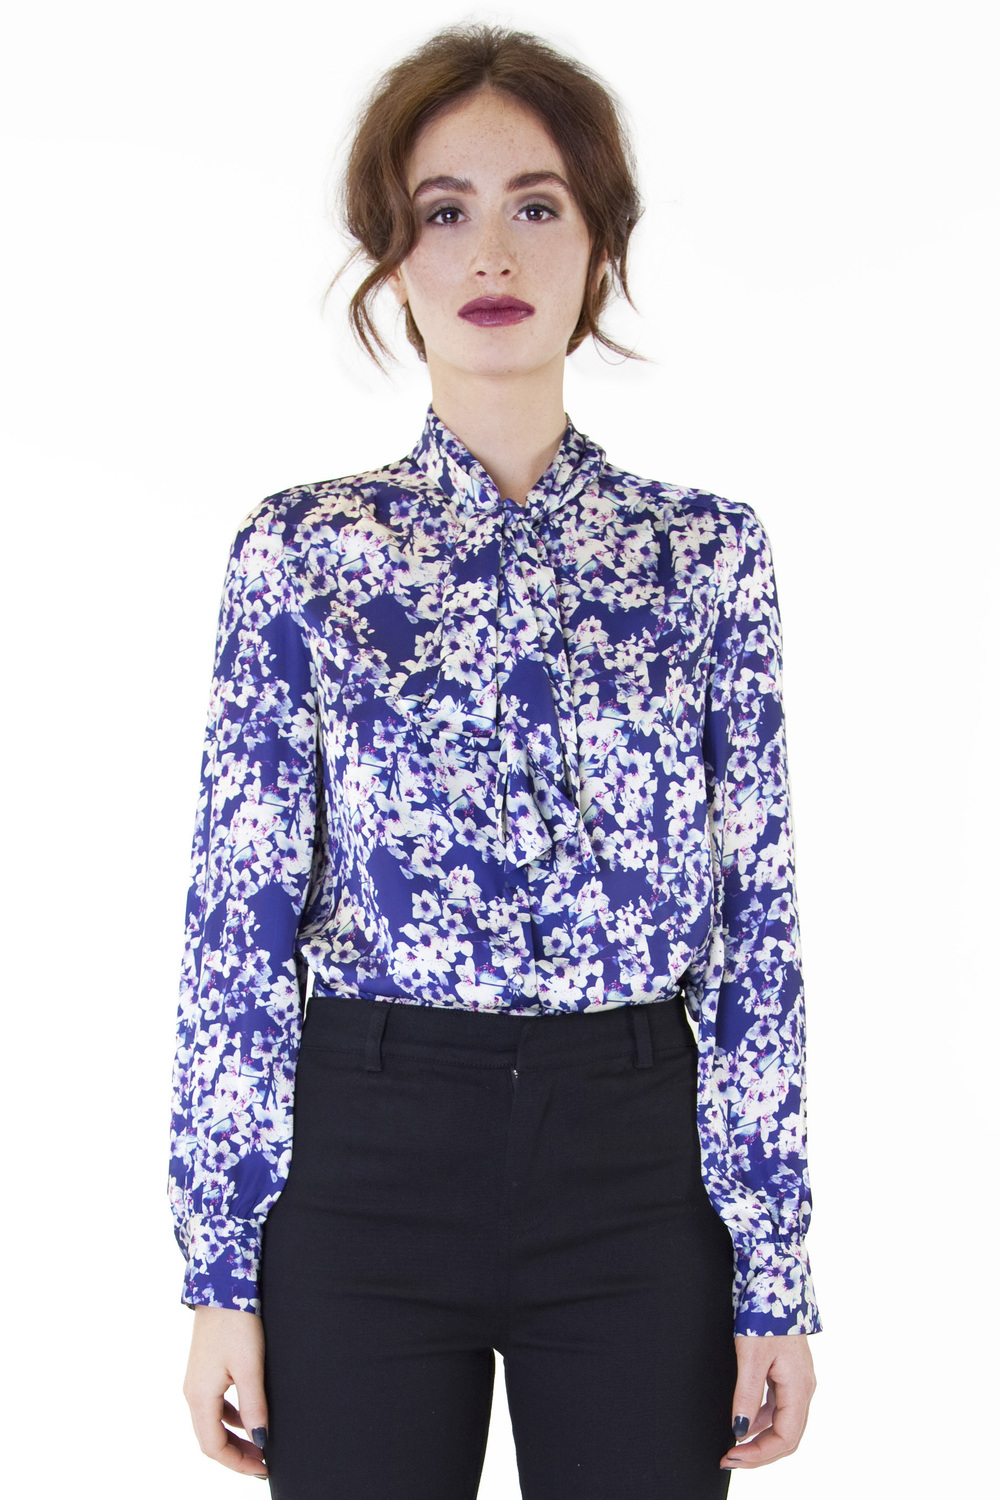 http://www.wolfandwhistle.co.uk/shop/product/2485/blossom-bow-front-blouse